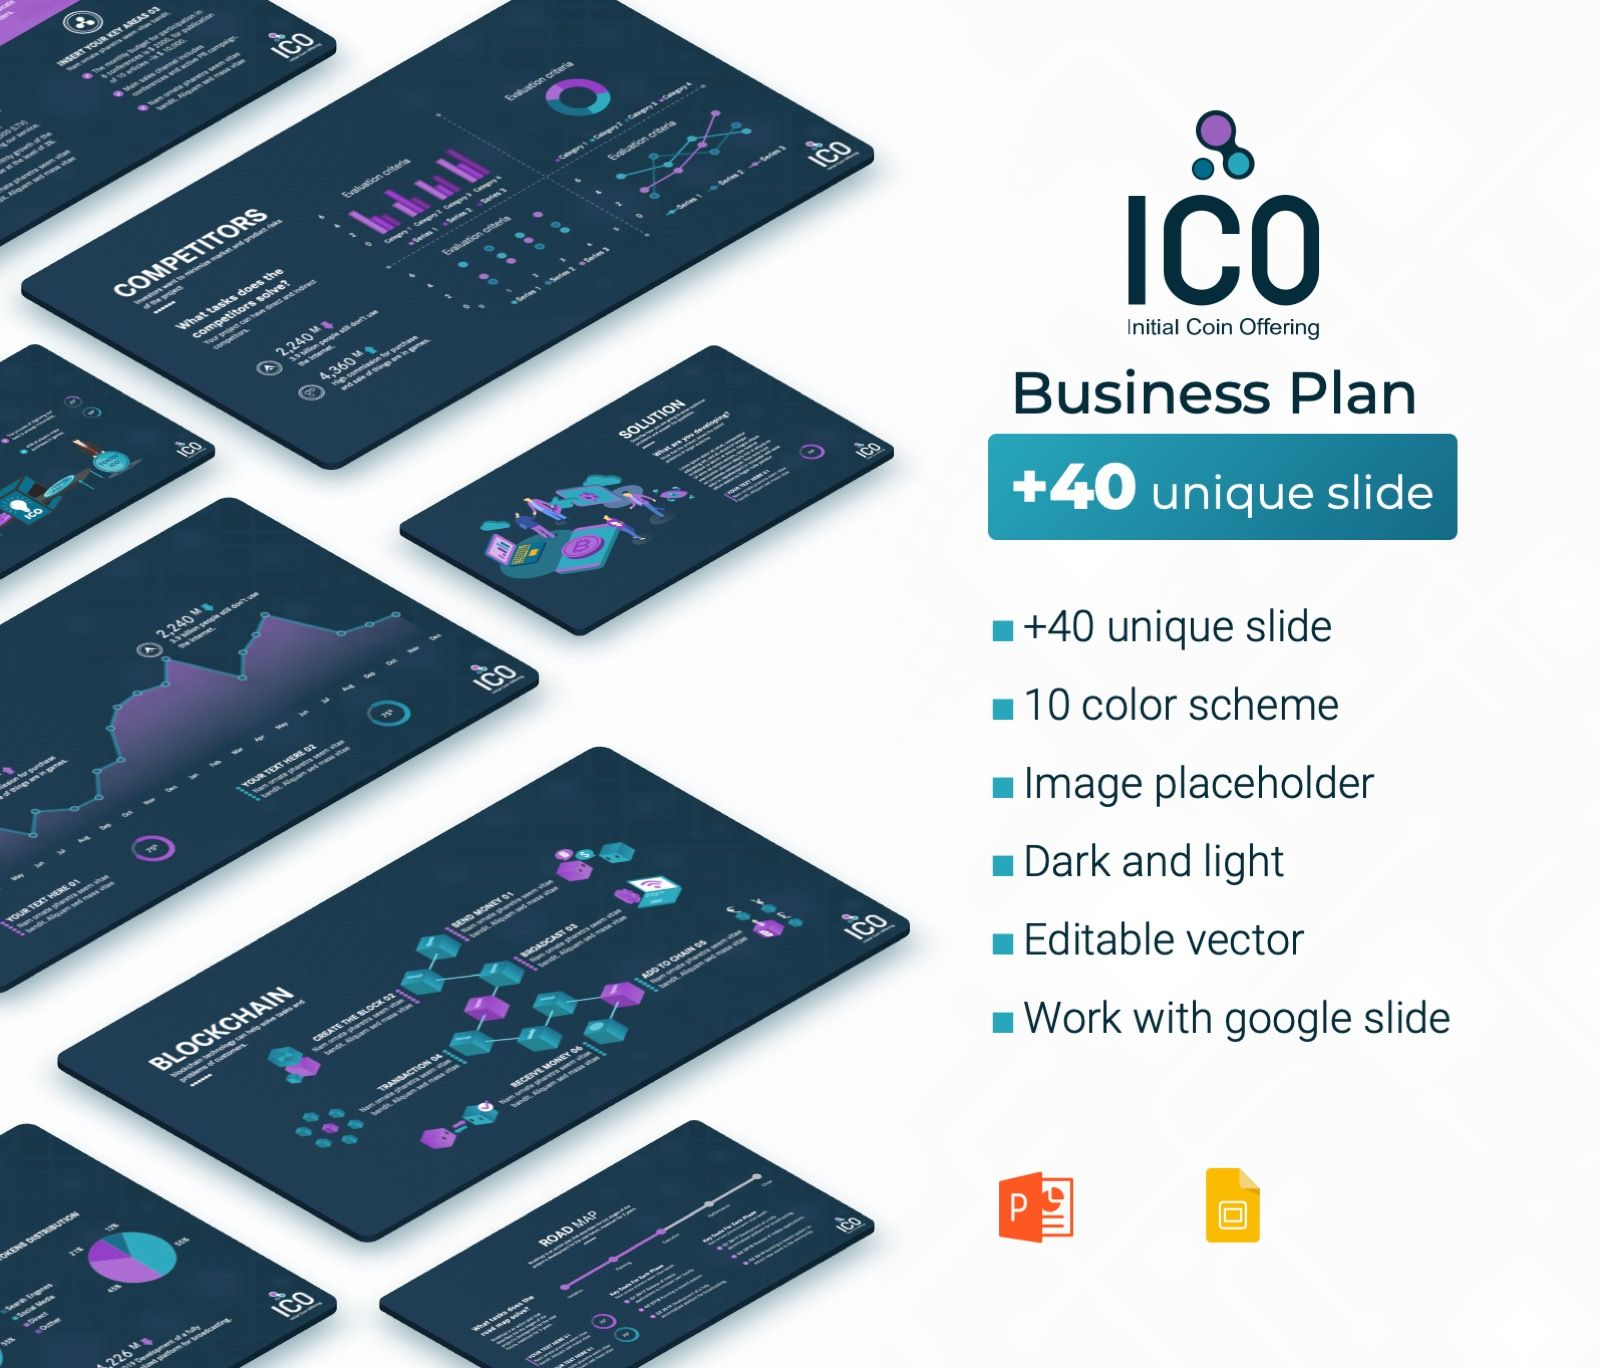 Ico Business Plan Presentation Powerpoint Template Premast Business Plan Presentation Business Planning How To Plan